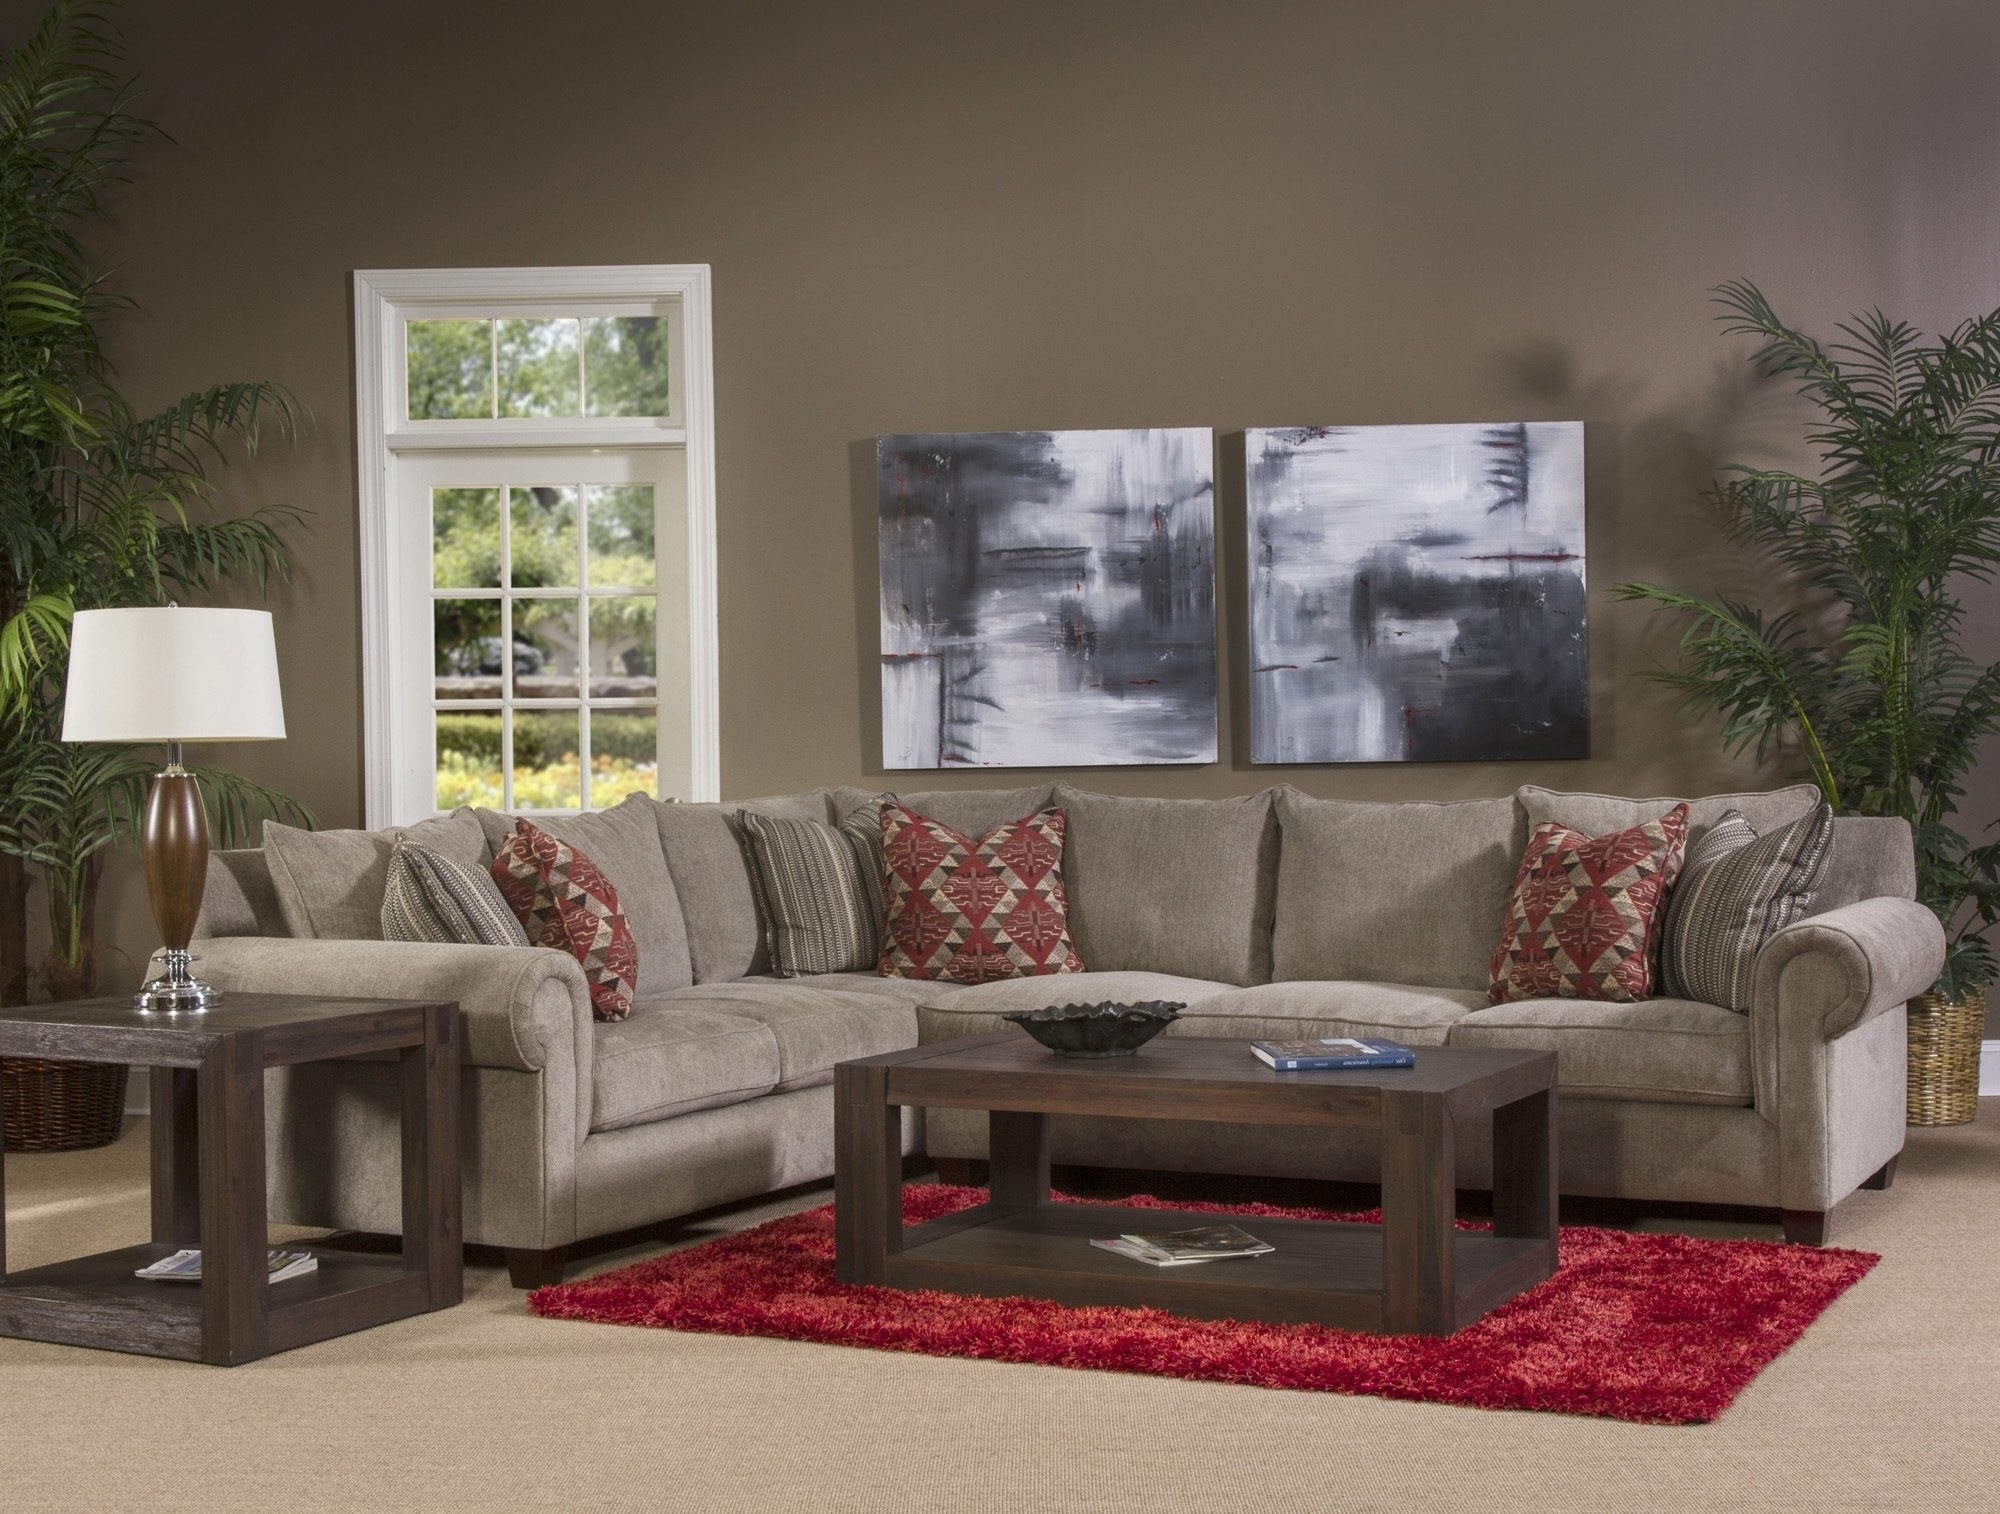 Most Current Down Feather Sectional Sofas In Low Profile Sectional Sofa Inspirational Down Feather Sectional (View 16 of 20)